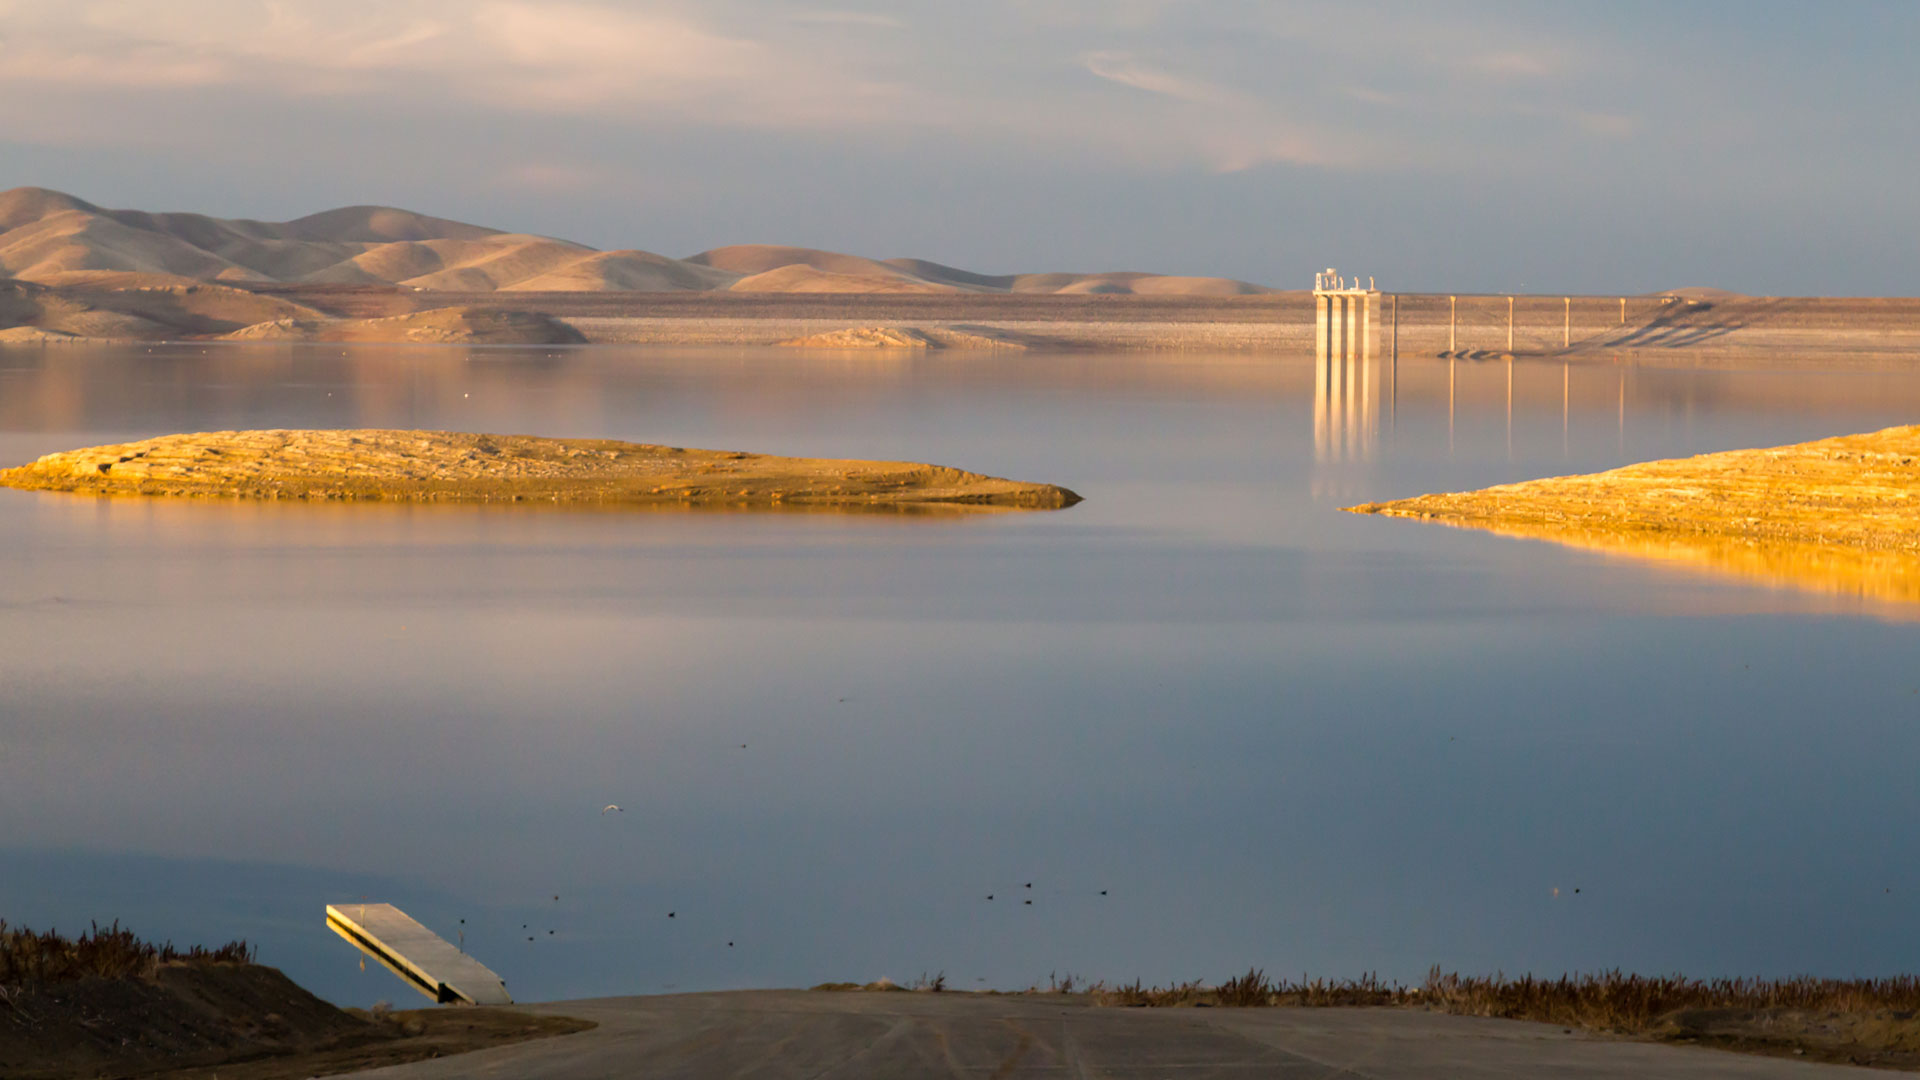 San Luis Reservoir, which serves the Central Valley and Bay Area, is filled entirely by water from the Delta pumping plants.